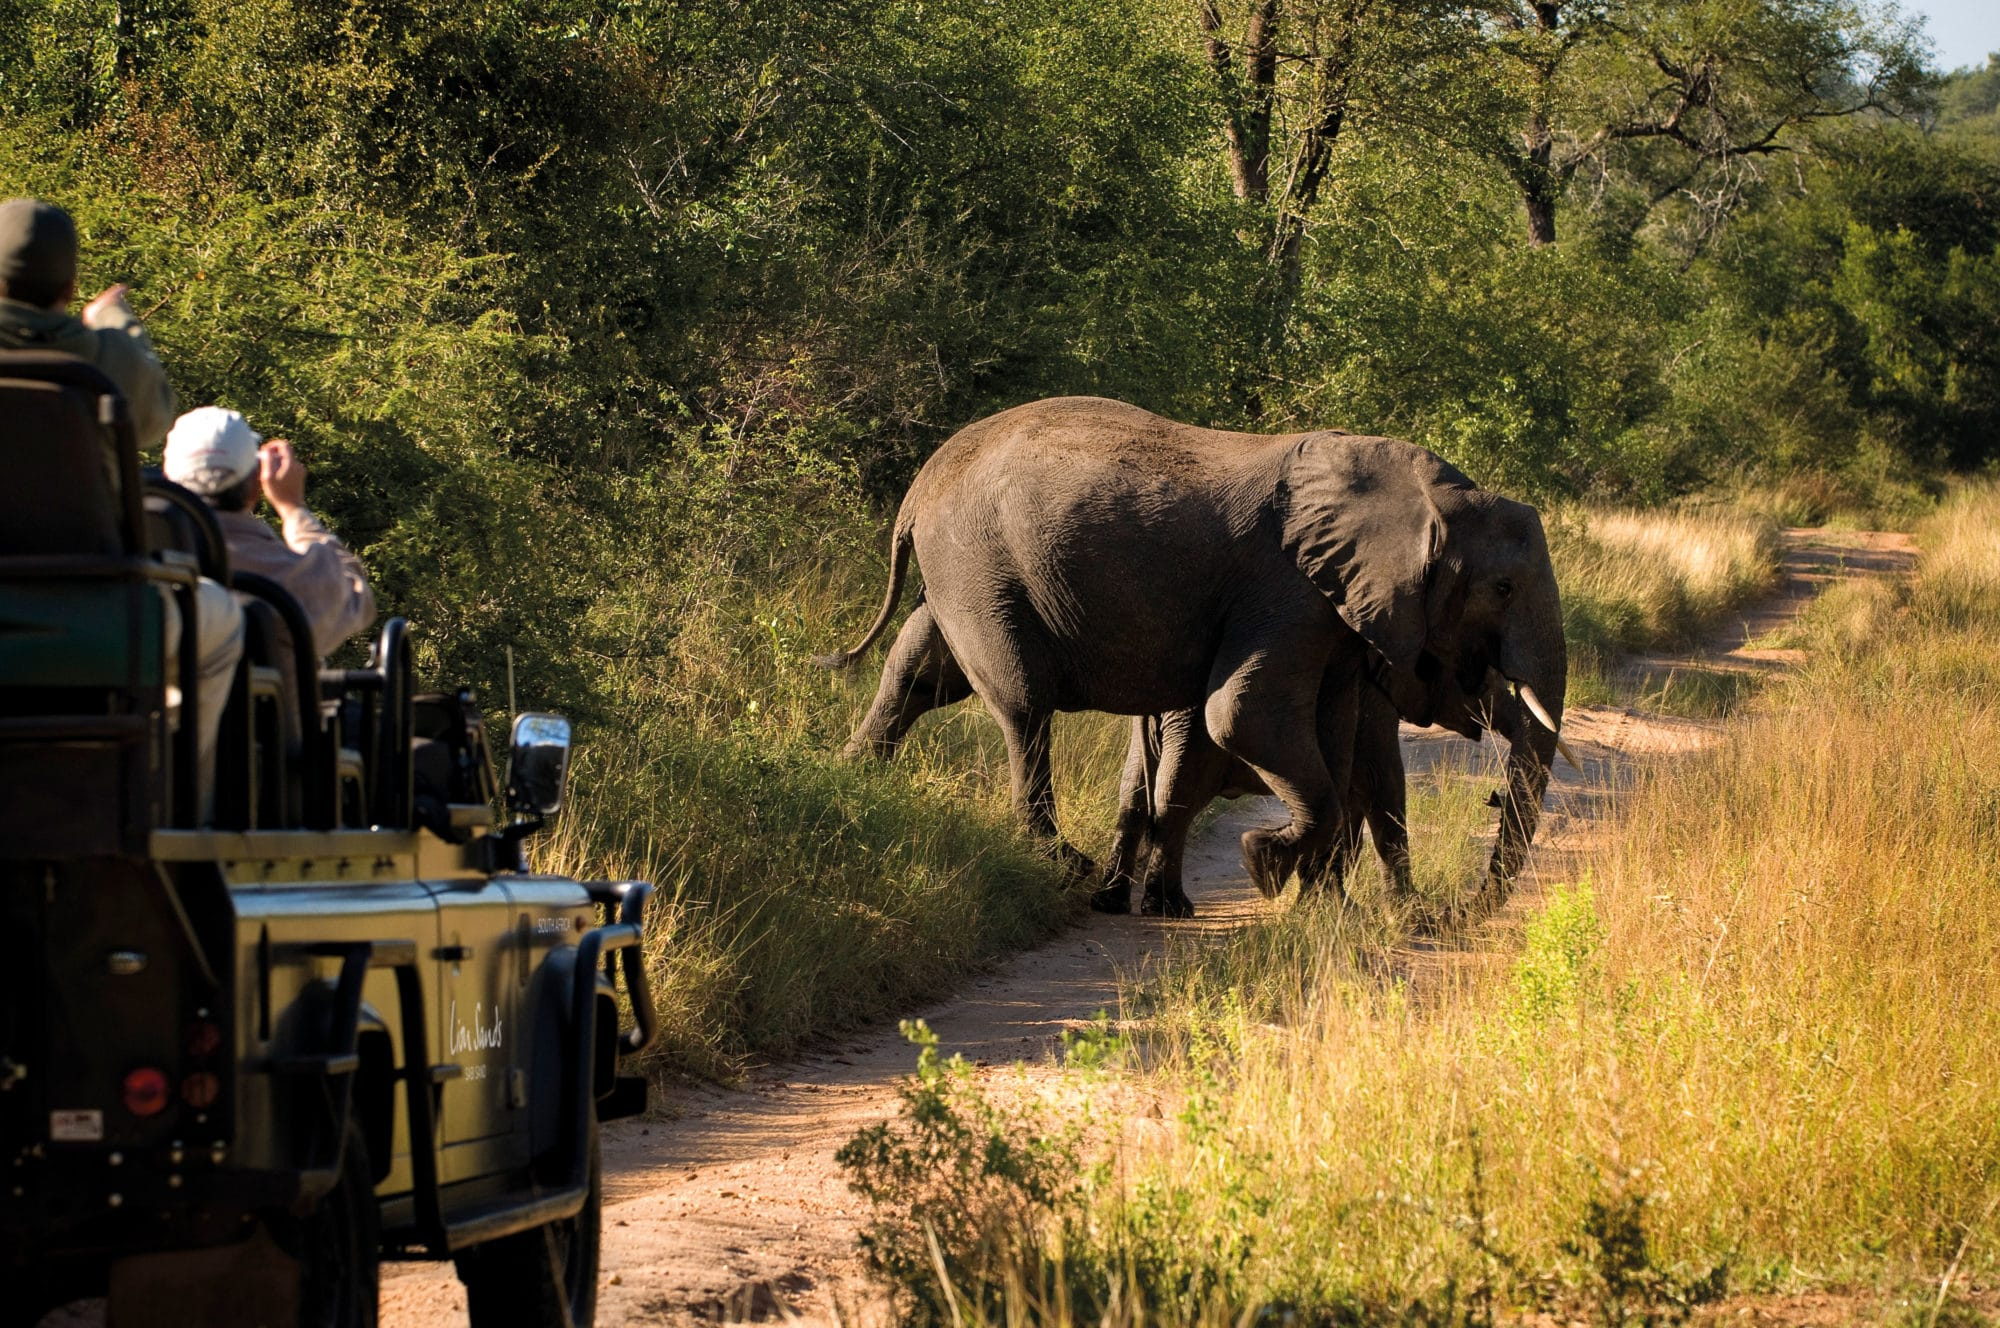 view of an elephant during a safari game drive